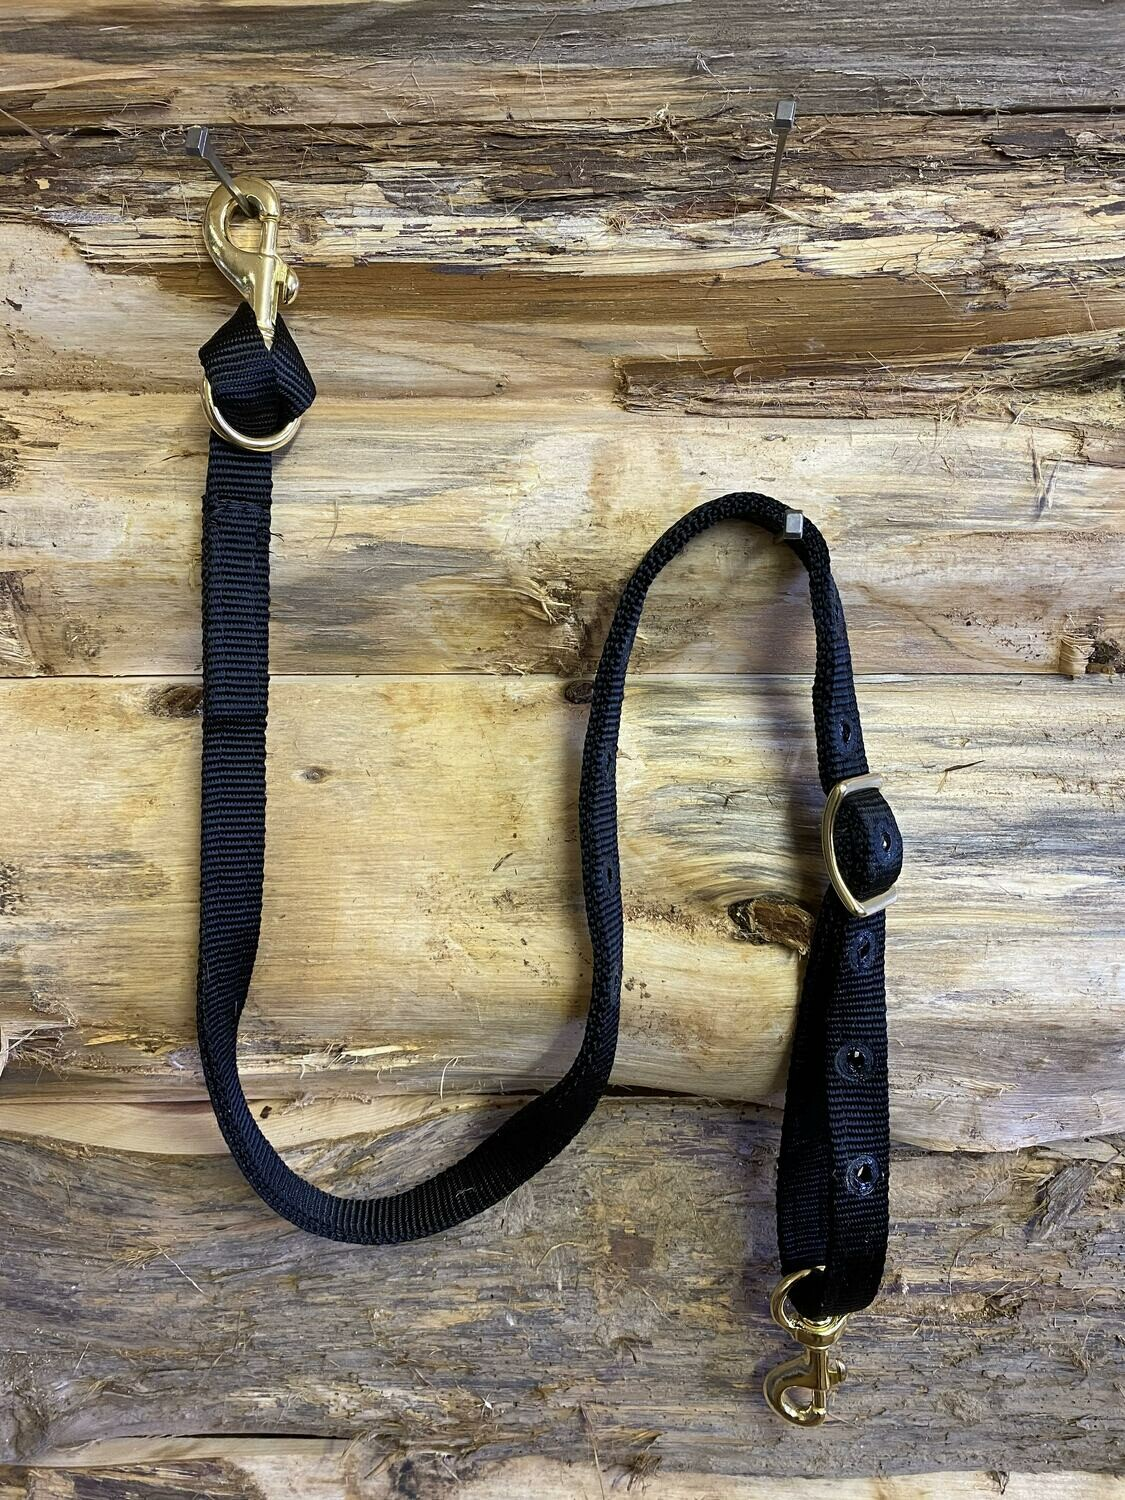 #332 Tiedown strap with Conway for adjustment